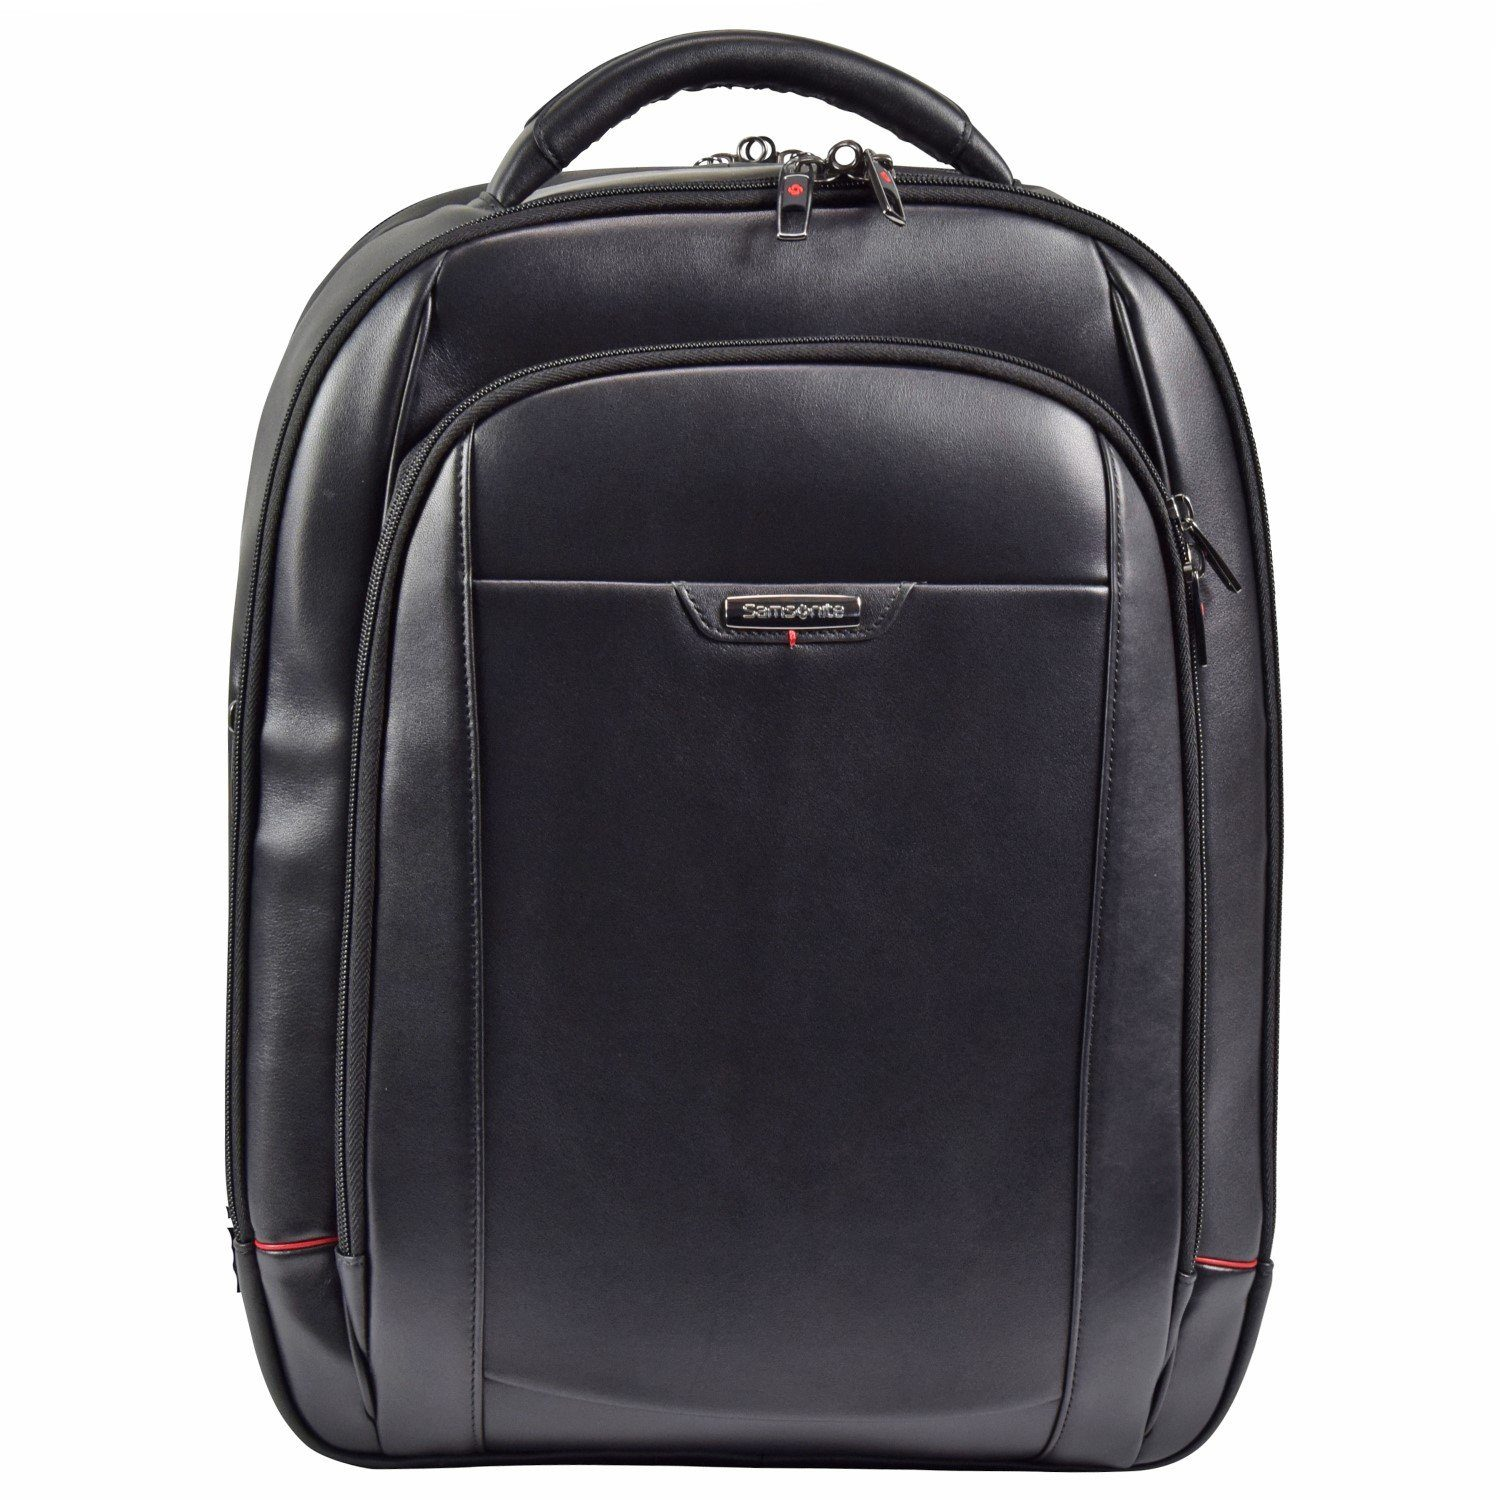 Samsonite Pro-DLX 4 LTH Business Rucksack Leder 50 cm Laptopfach